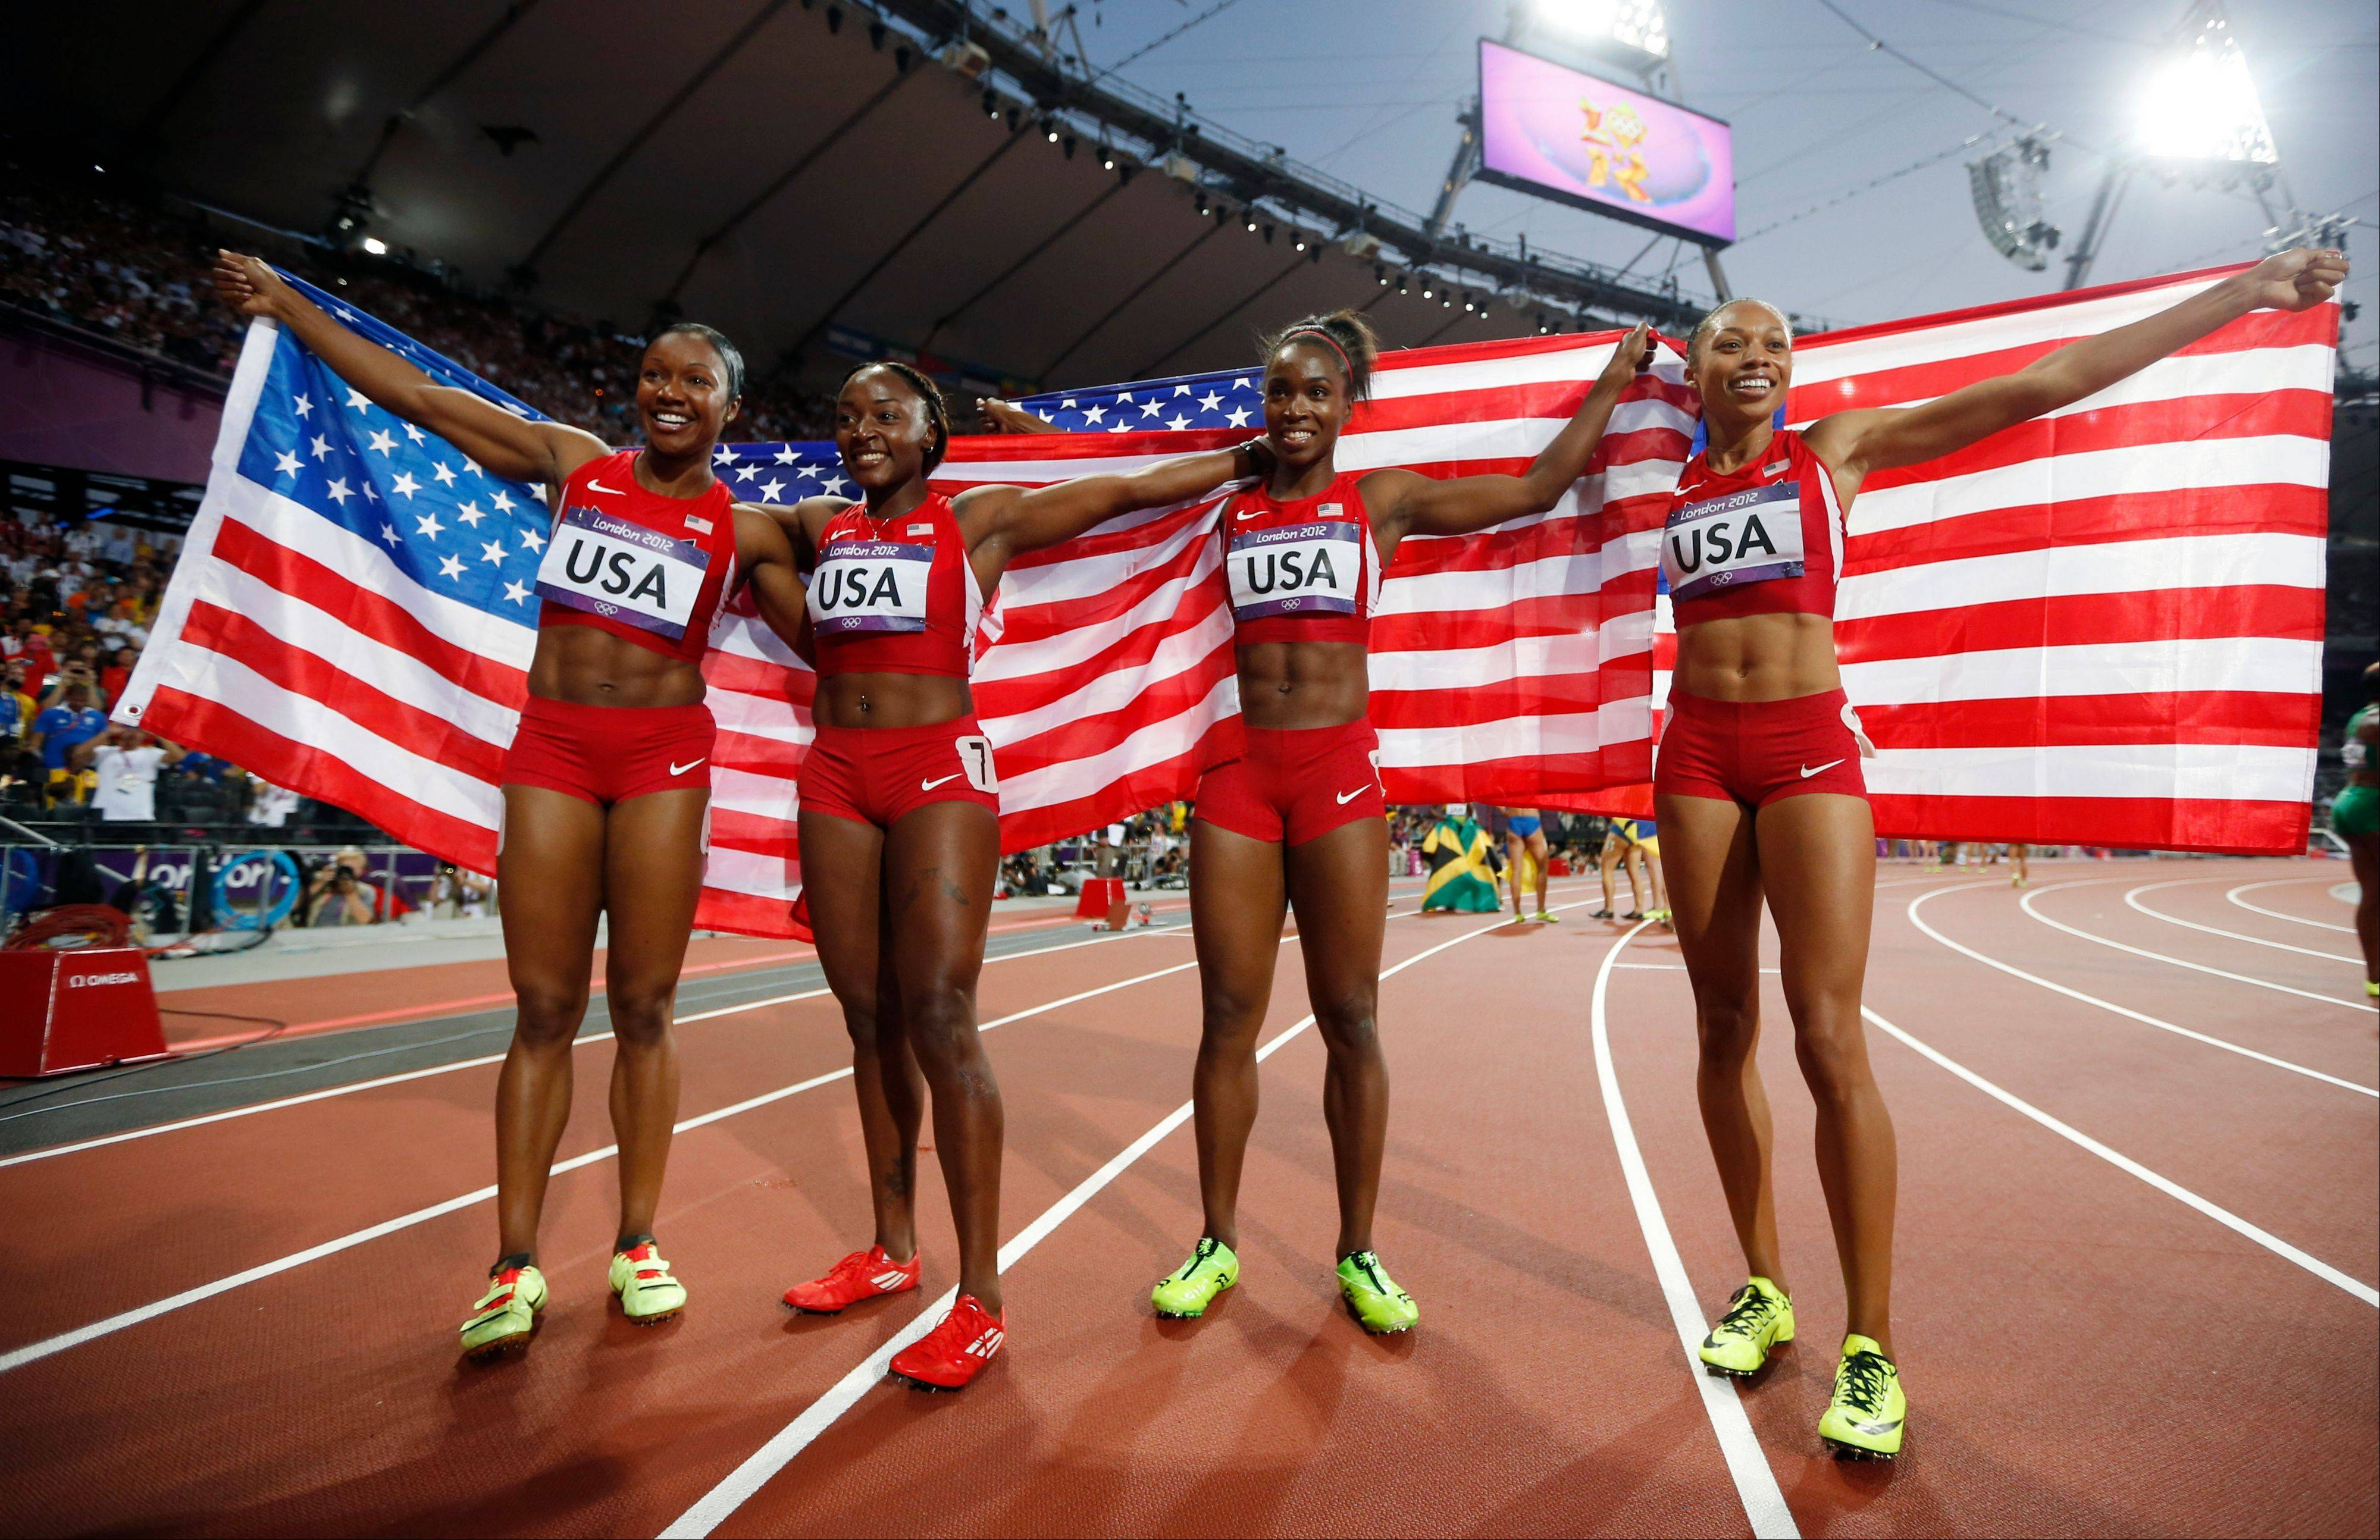 United States' women's 4 x100-meter relay team members, from left, Carmelita Jeter, Bianca Knight, Tianna Madison and Allyson Felix, celebrate their gold medal win during the athletics in the Olympic Stadium at the 2012 Summer Olympics, London, Friday, Aug. 10, 2012. The United States relay team set a new world record with a time of 40.82 seconds